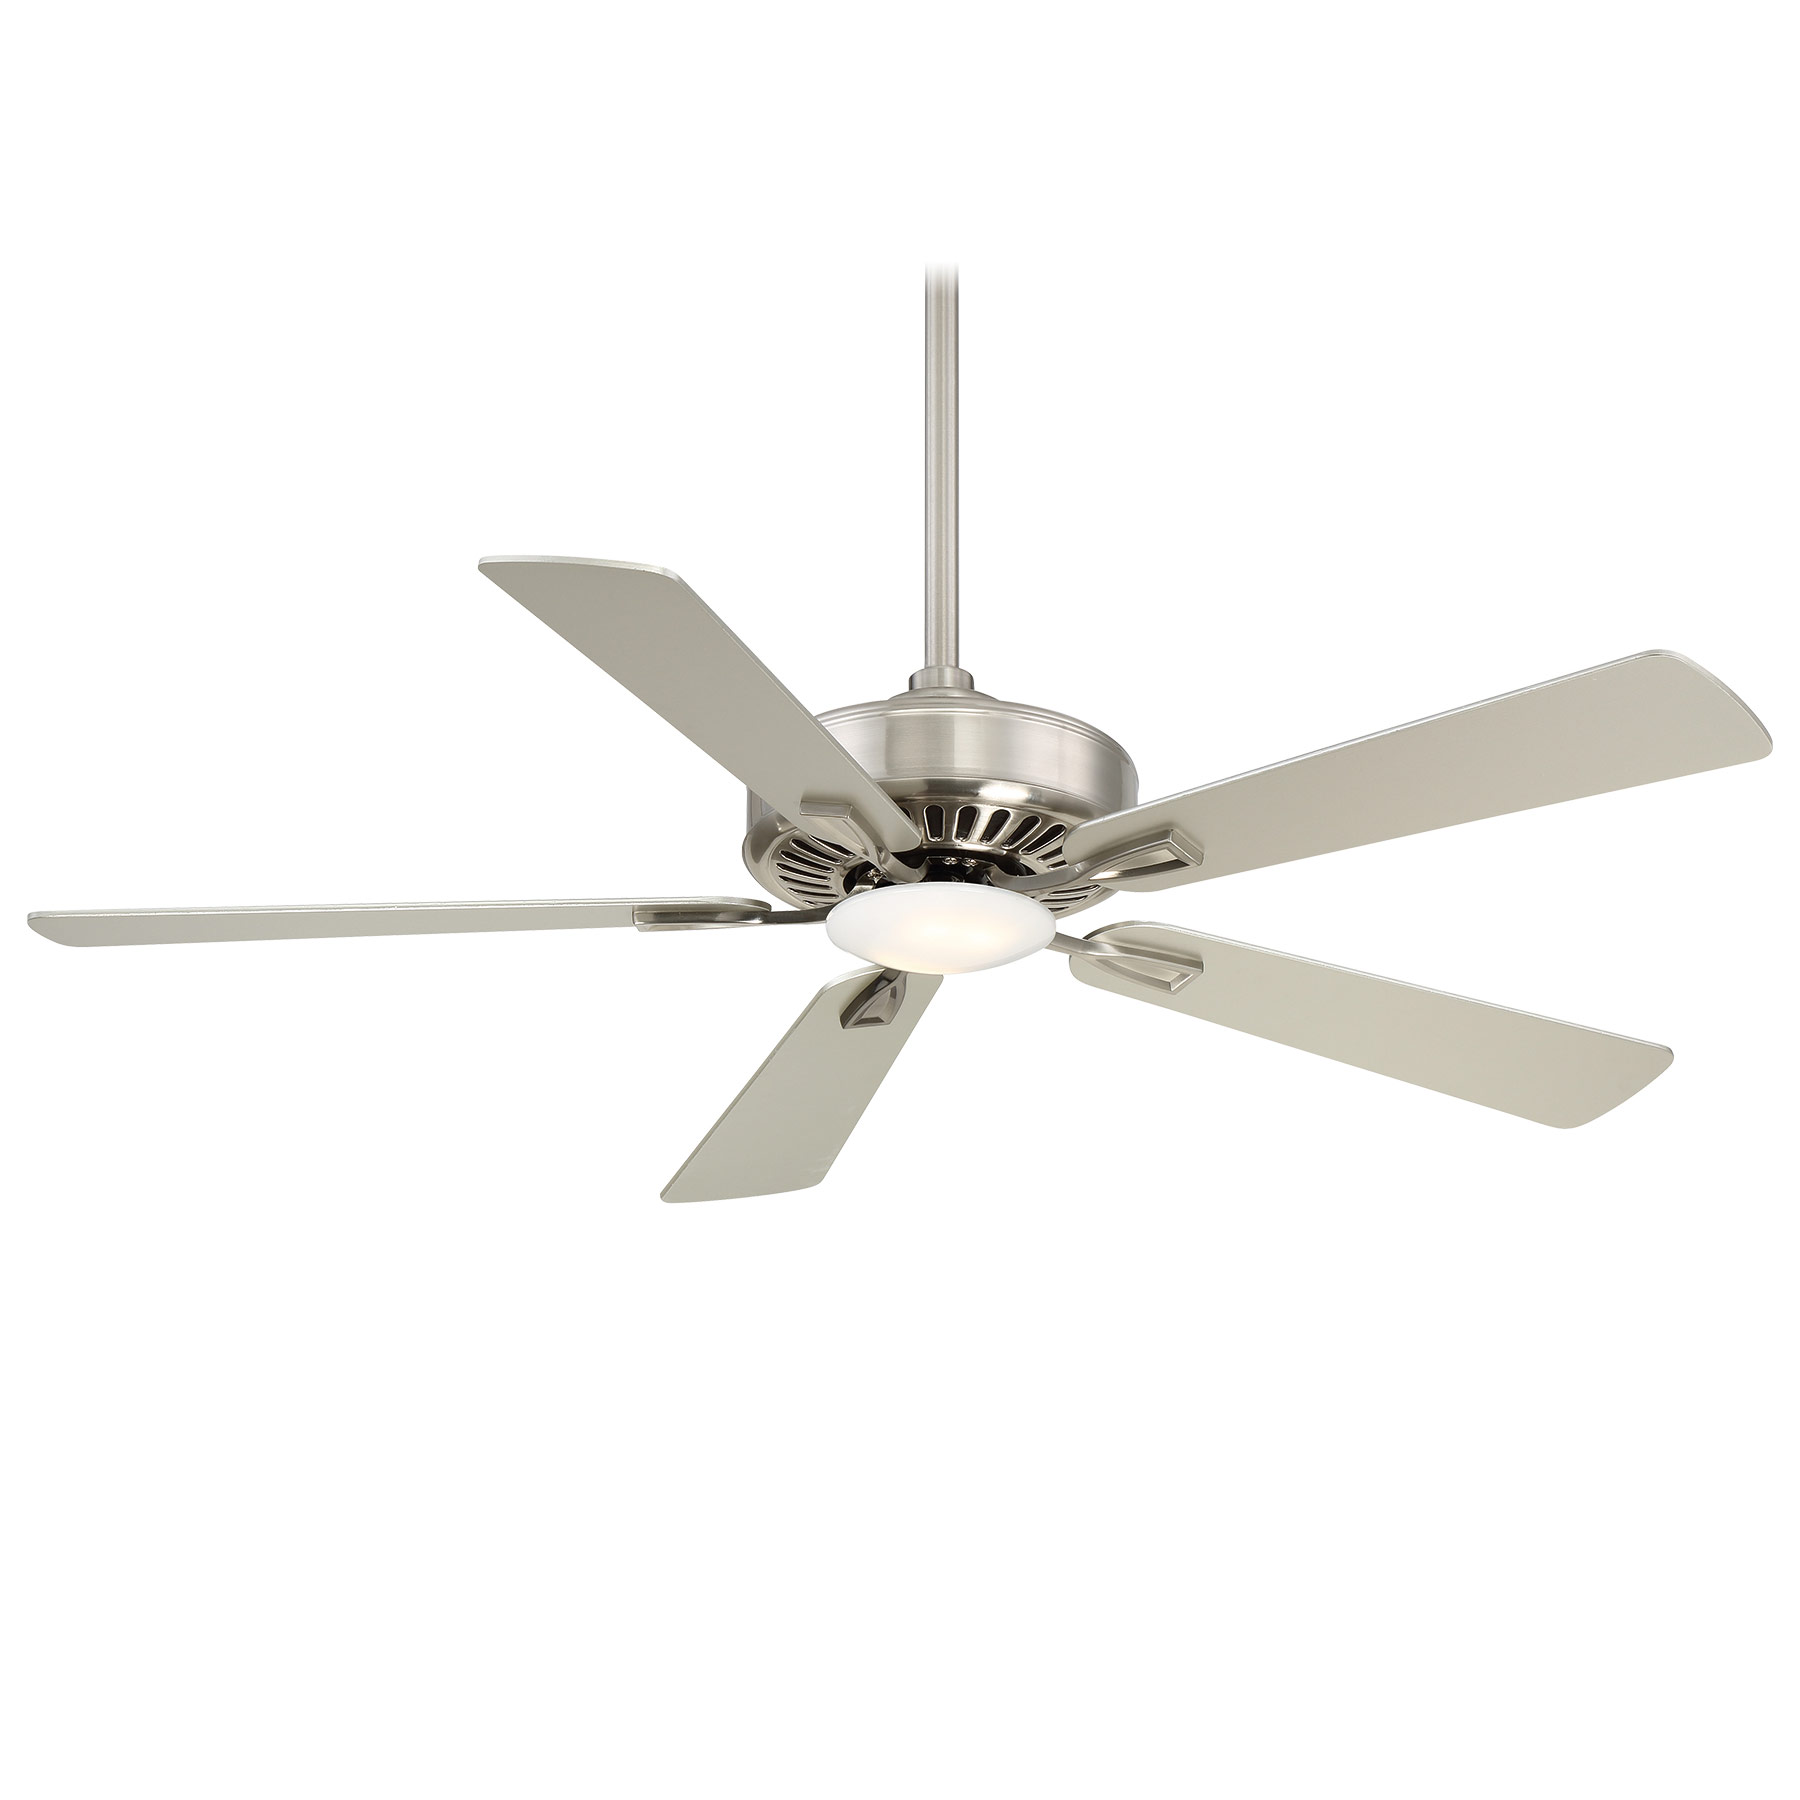 minka outdoor fan sl zoom productdetail to silver ceiling inch on sale aire hover htm simple